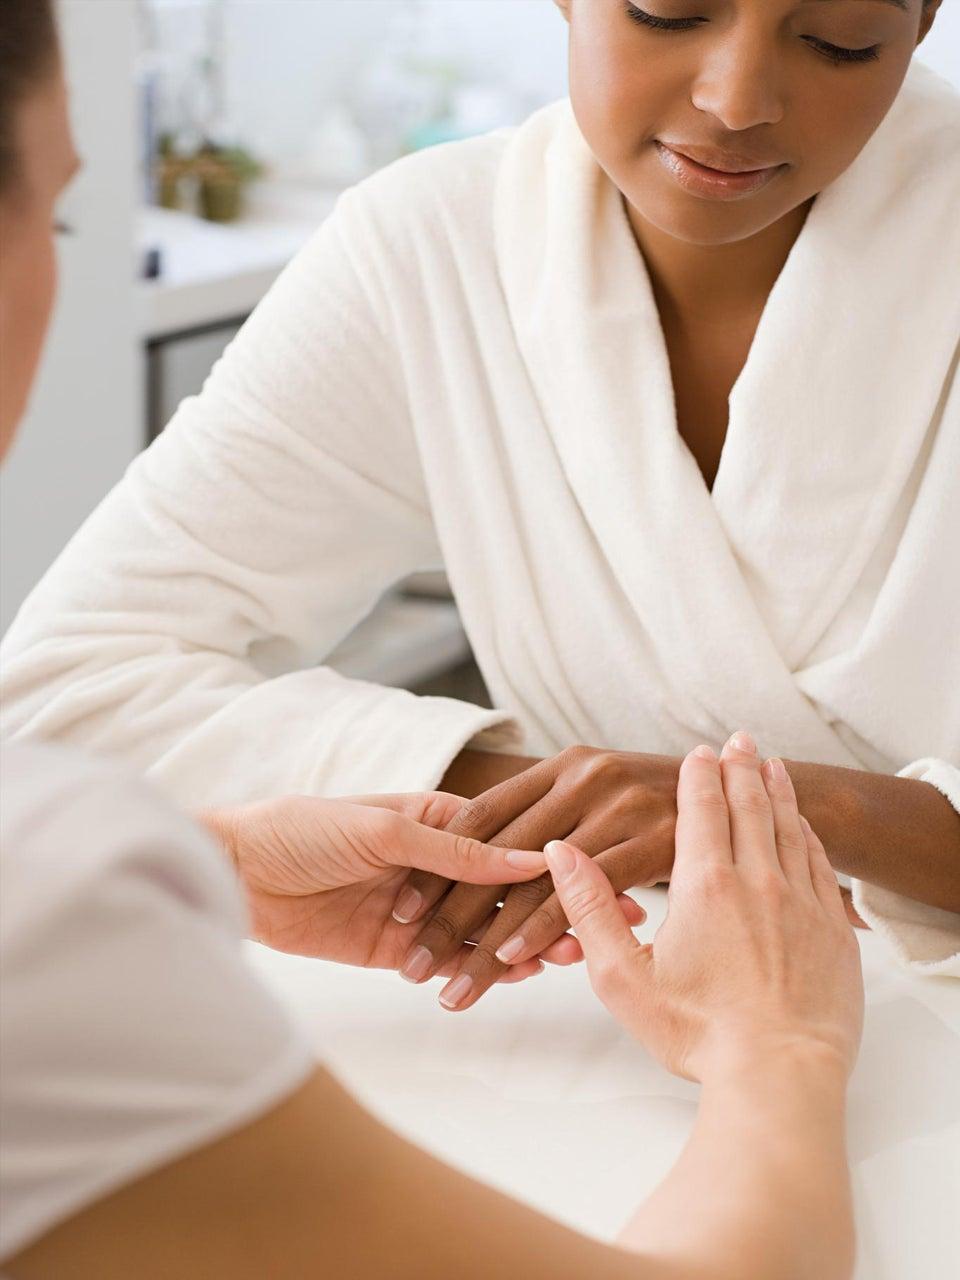 ESSENCE Poll: Are You Rethinking Where You'll Get Your Nails Done?